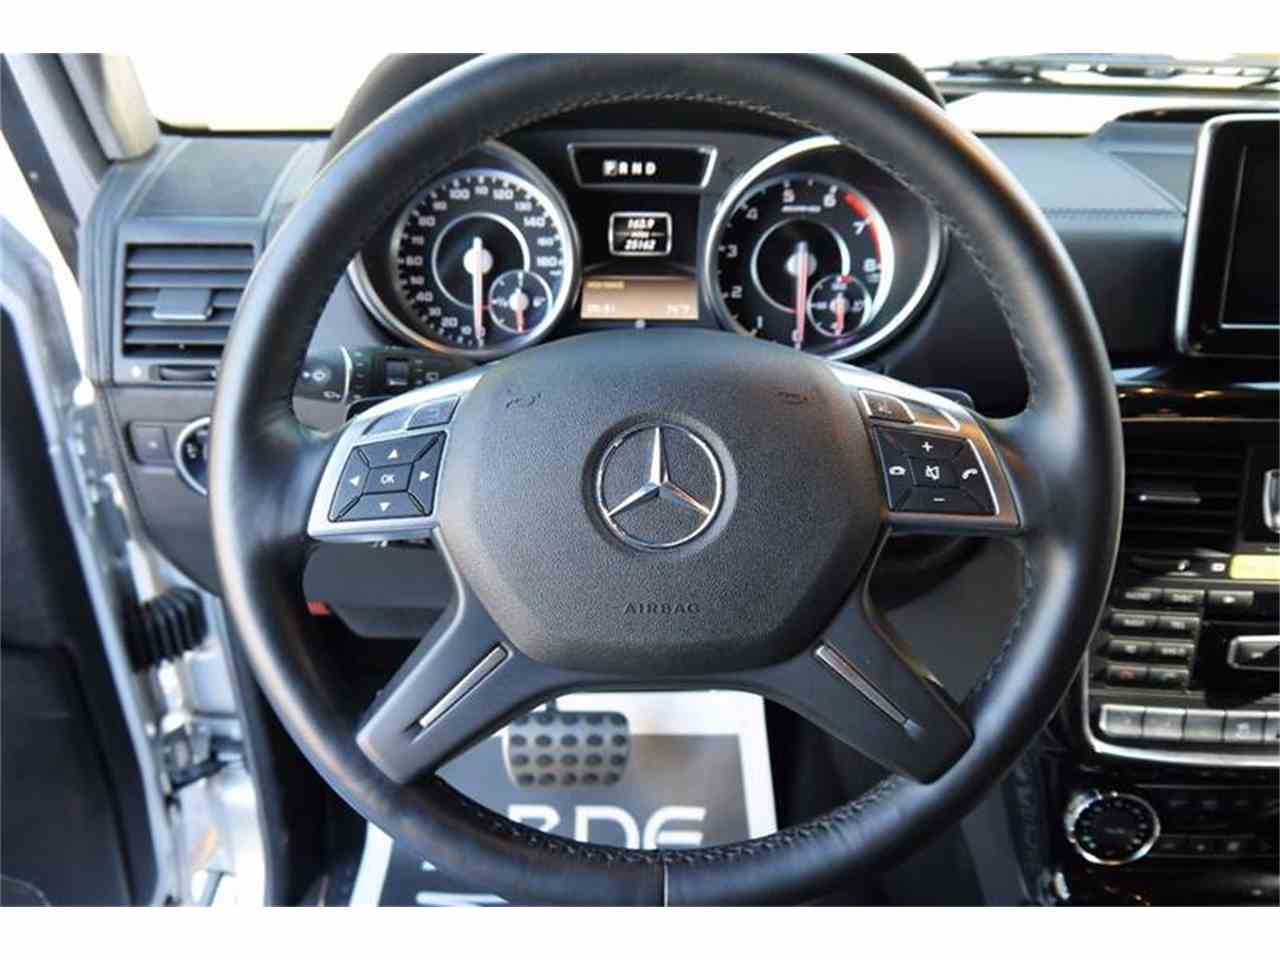 Large Picture of 2013 Mercedes-Benz G-Class located in Brentwood Tennessee Offered by Arde Motorcars - M2NF